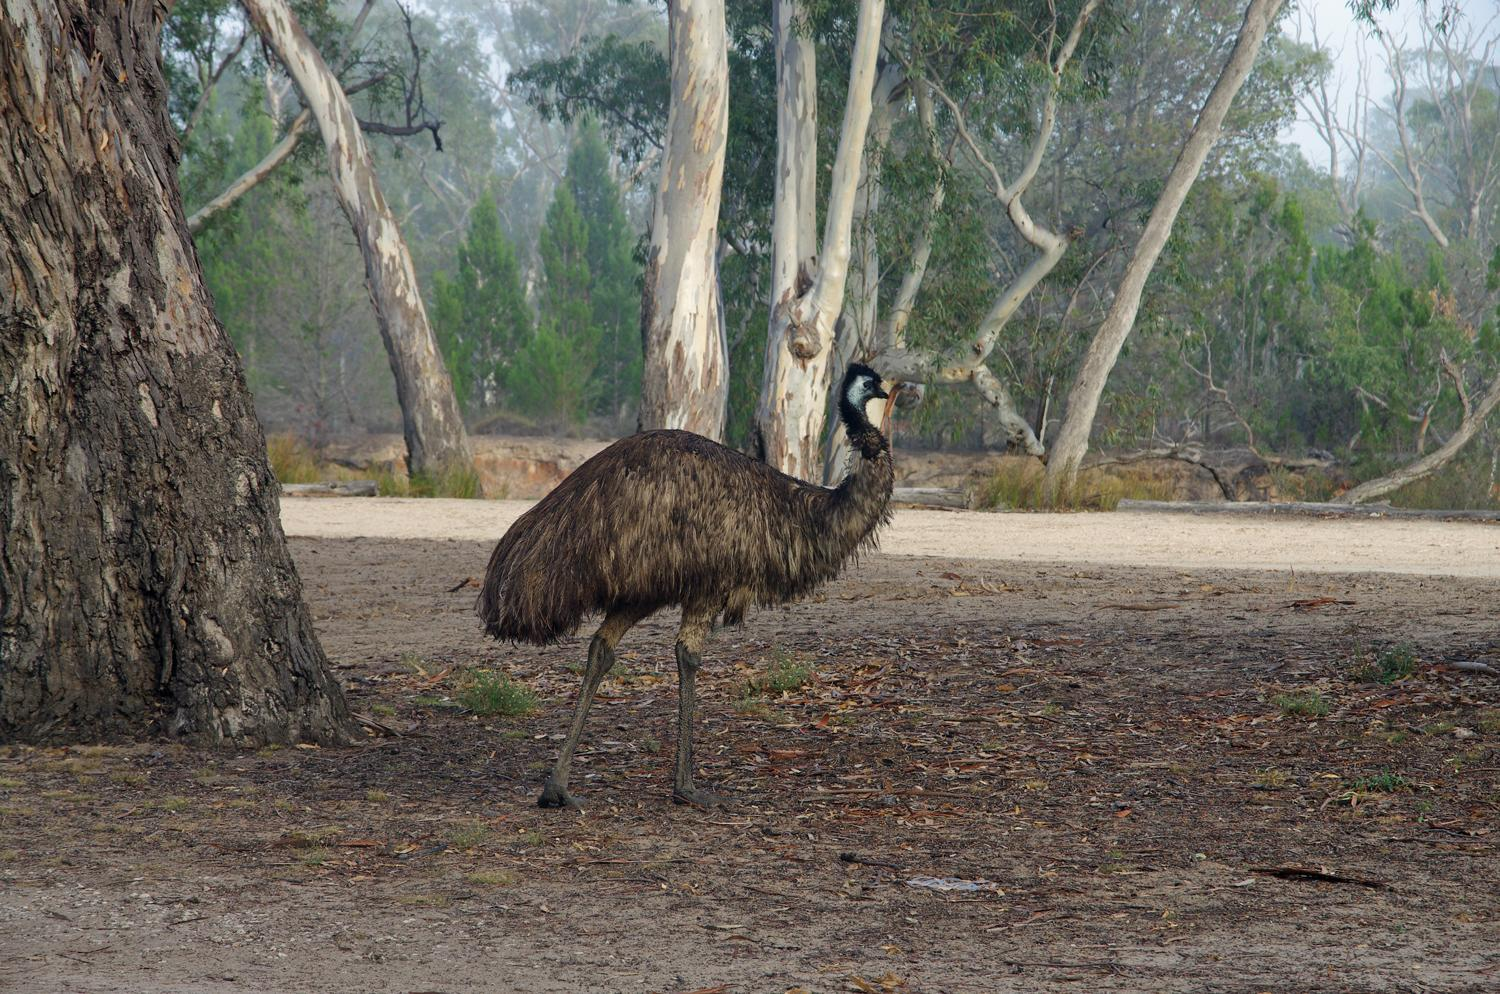 Emu Photo by Richard Lund